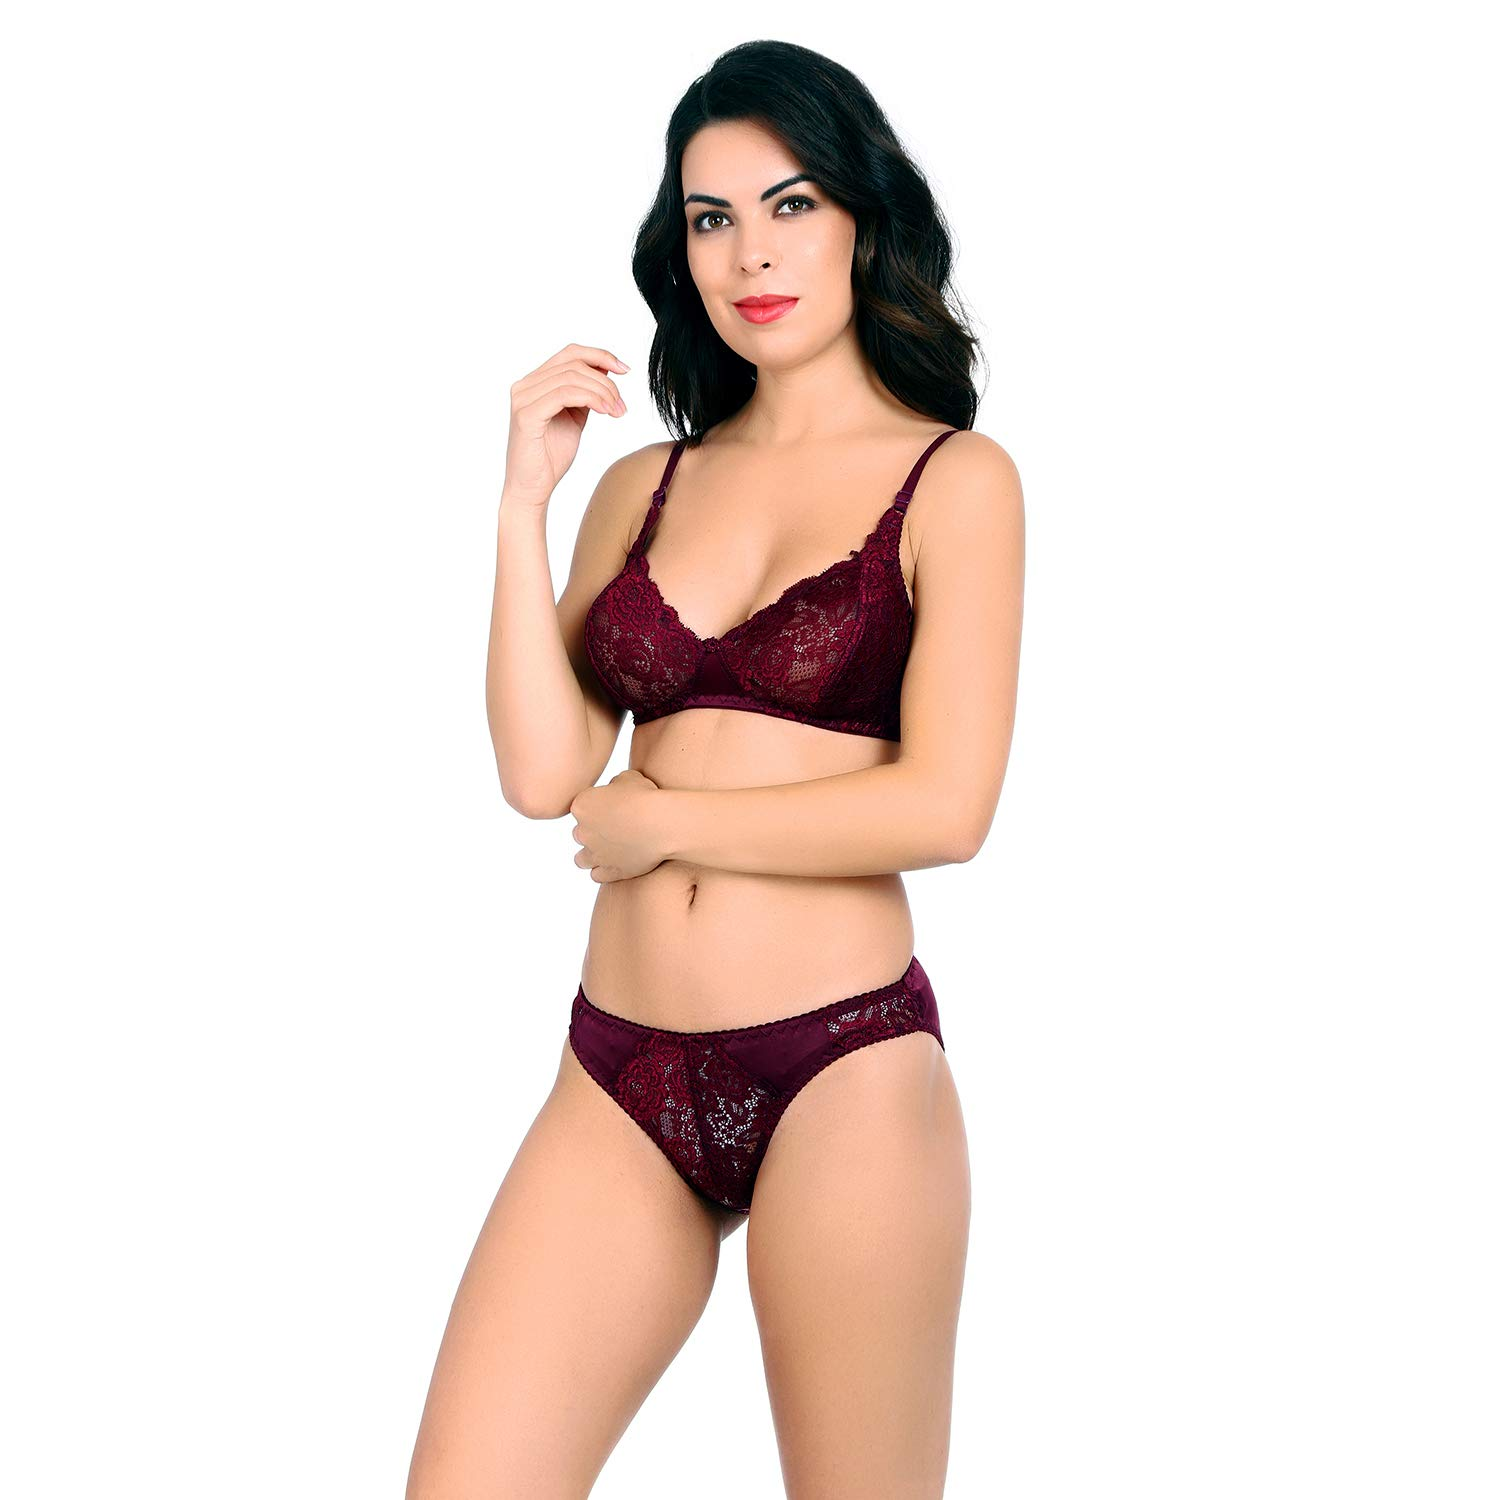 b7f427870af28 ... Women s Everyday Non Padded Wire Free Full Coverage Lace Bra Panty Set  with Adjustable Straps - Pack of 2 Lingrie Set  Amazon.in  Clothing    Accessories